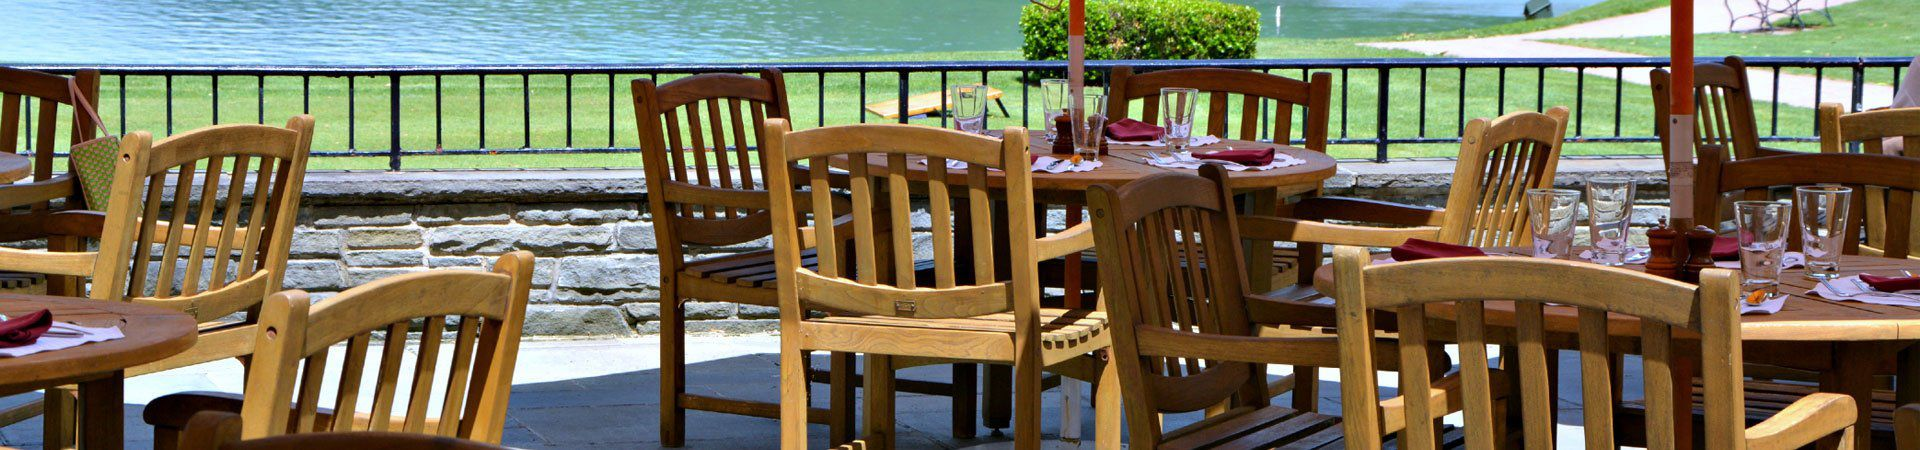 The Hawkeye Bar & Grill in The Otesaga Resort Hotel Cooperstown, New York